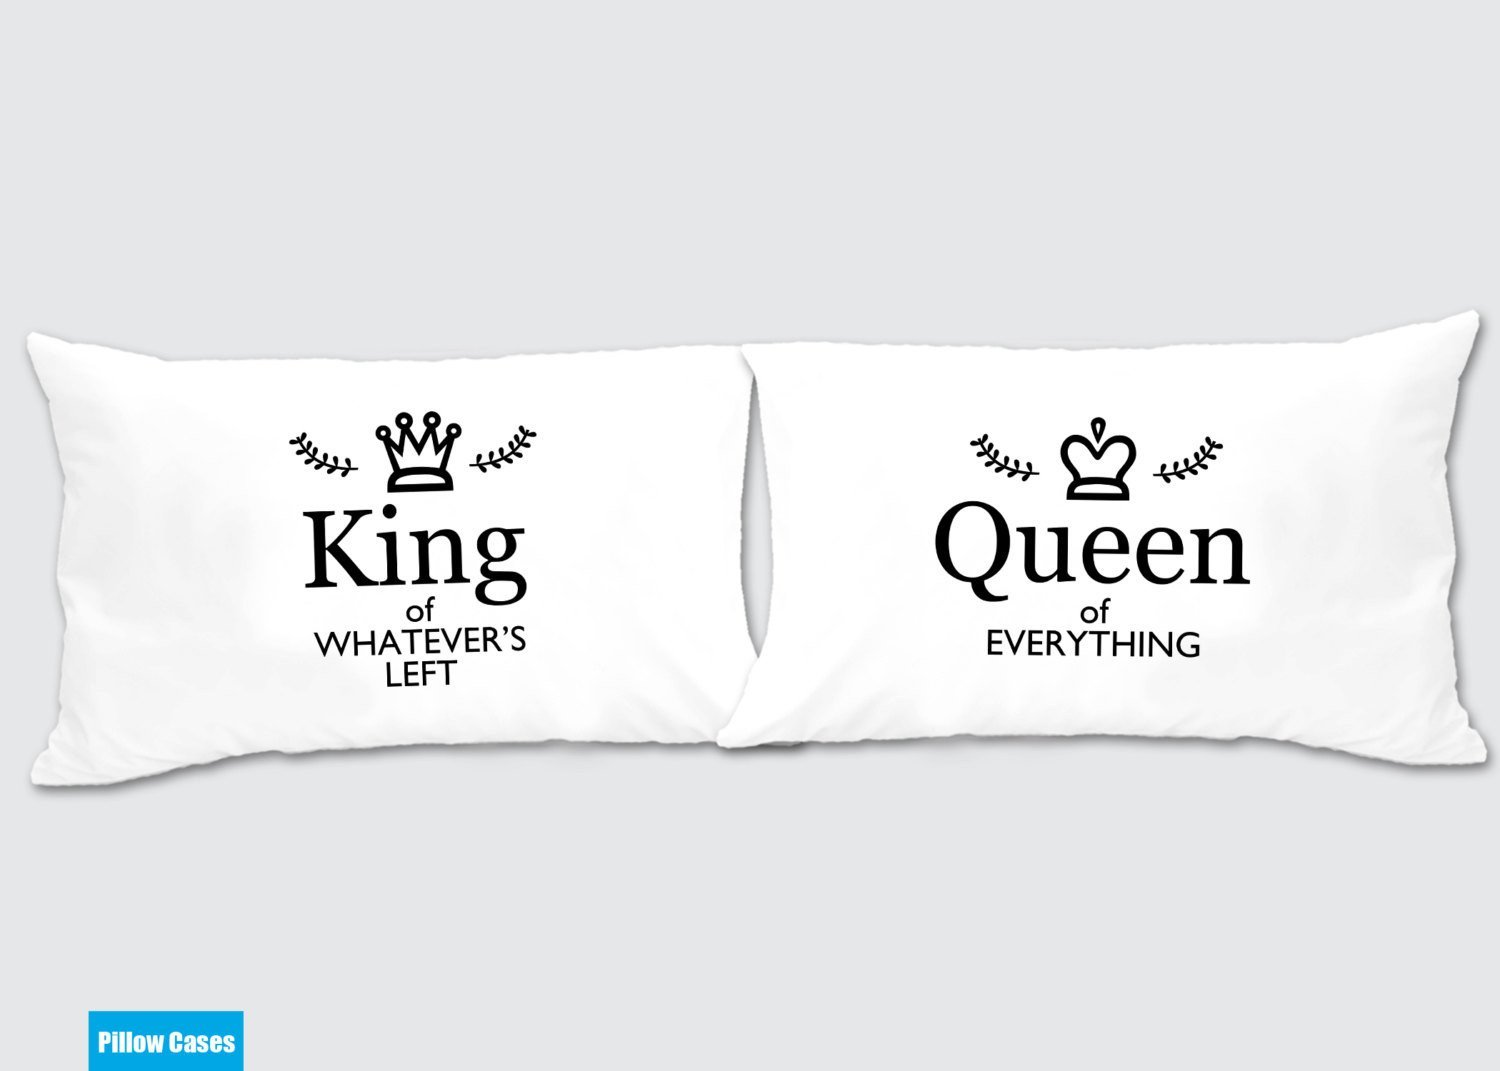 Queen of Everything - King of whatever left Matching Pillow Cases - Awesome Gift for cute couples - Price is ...